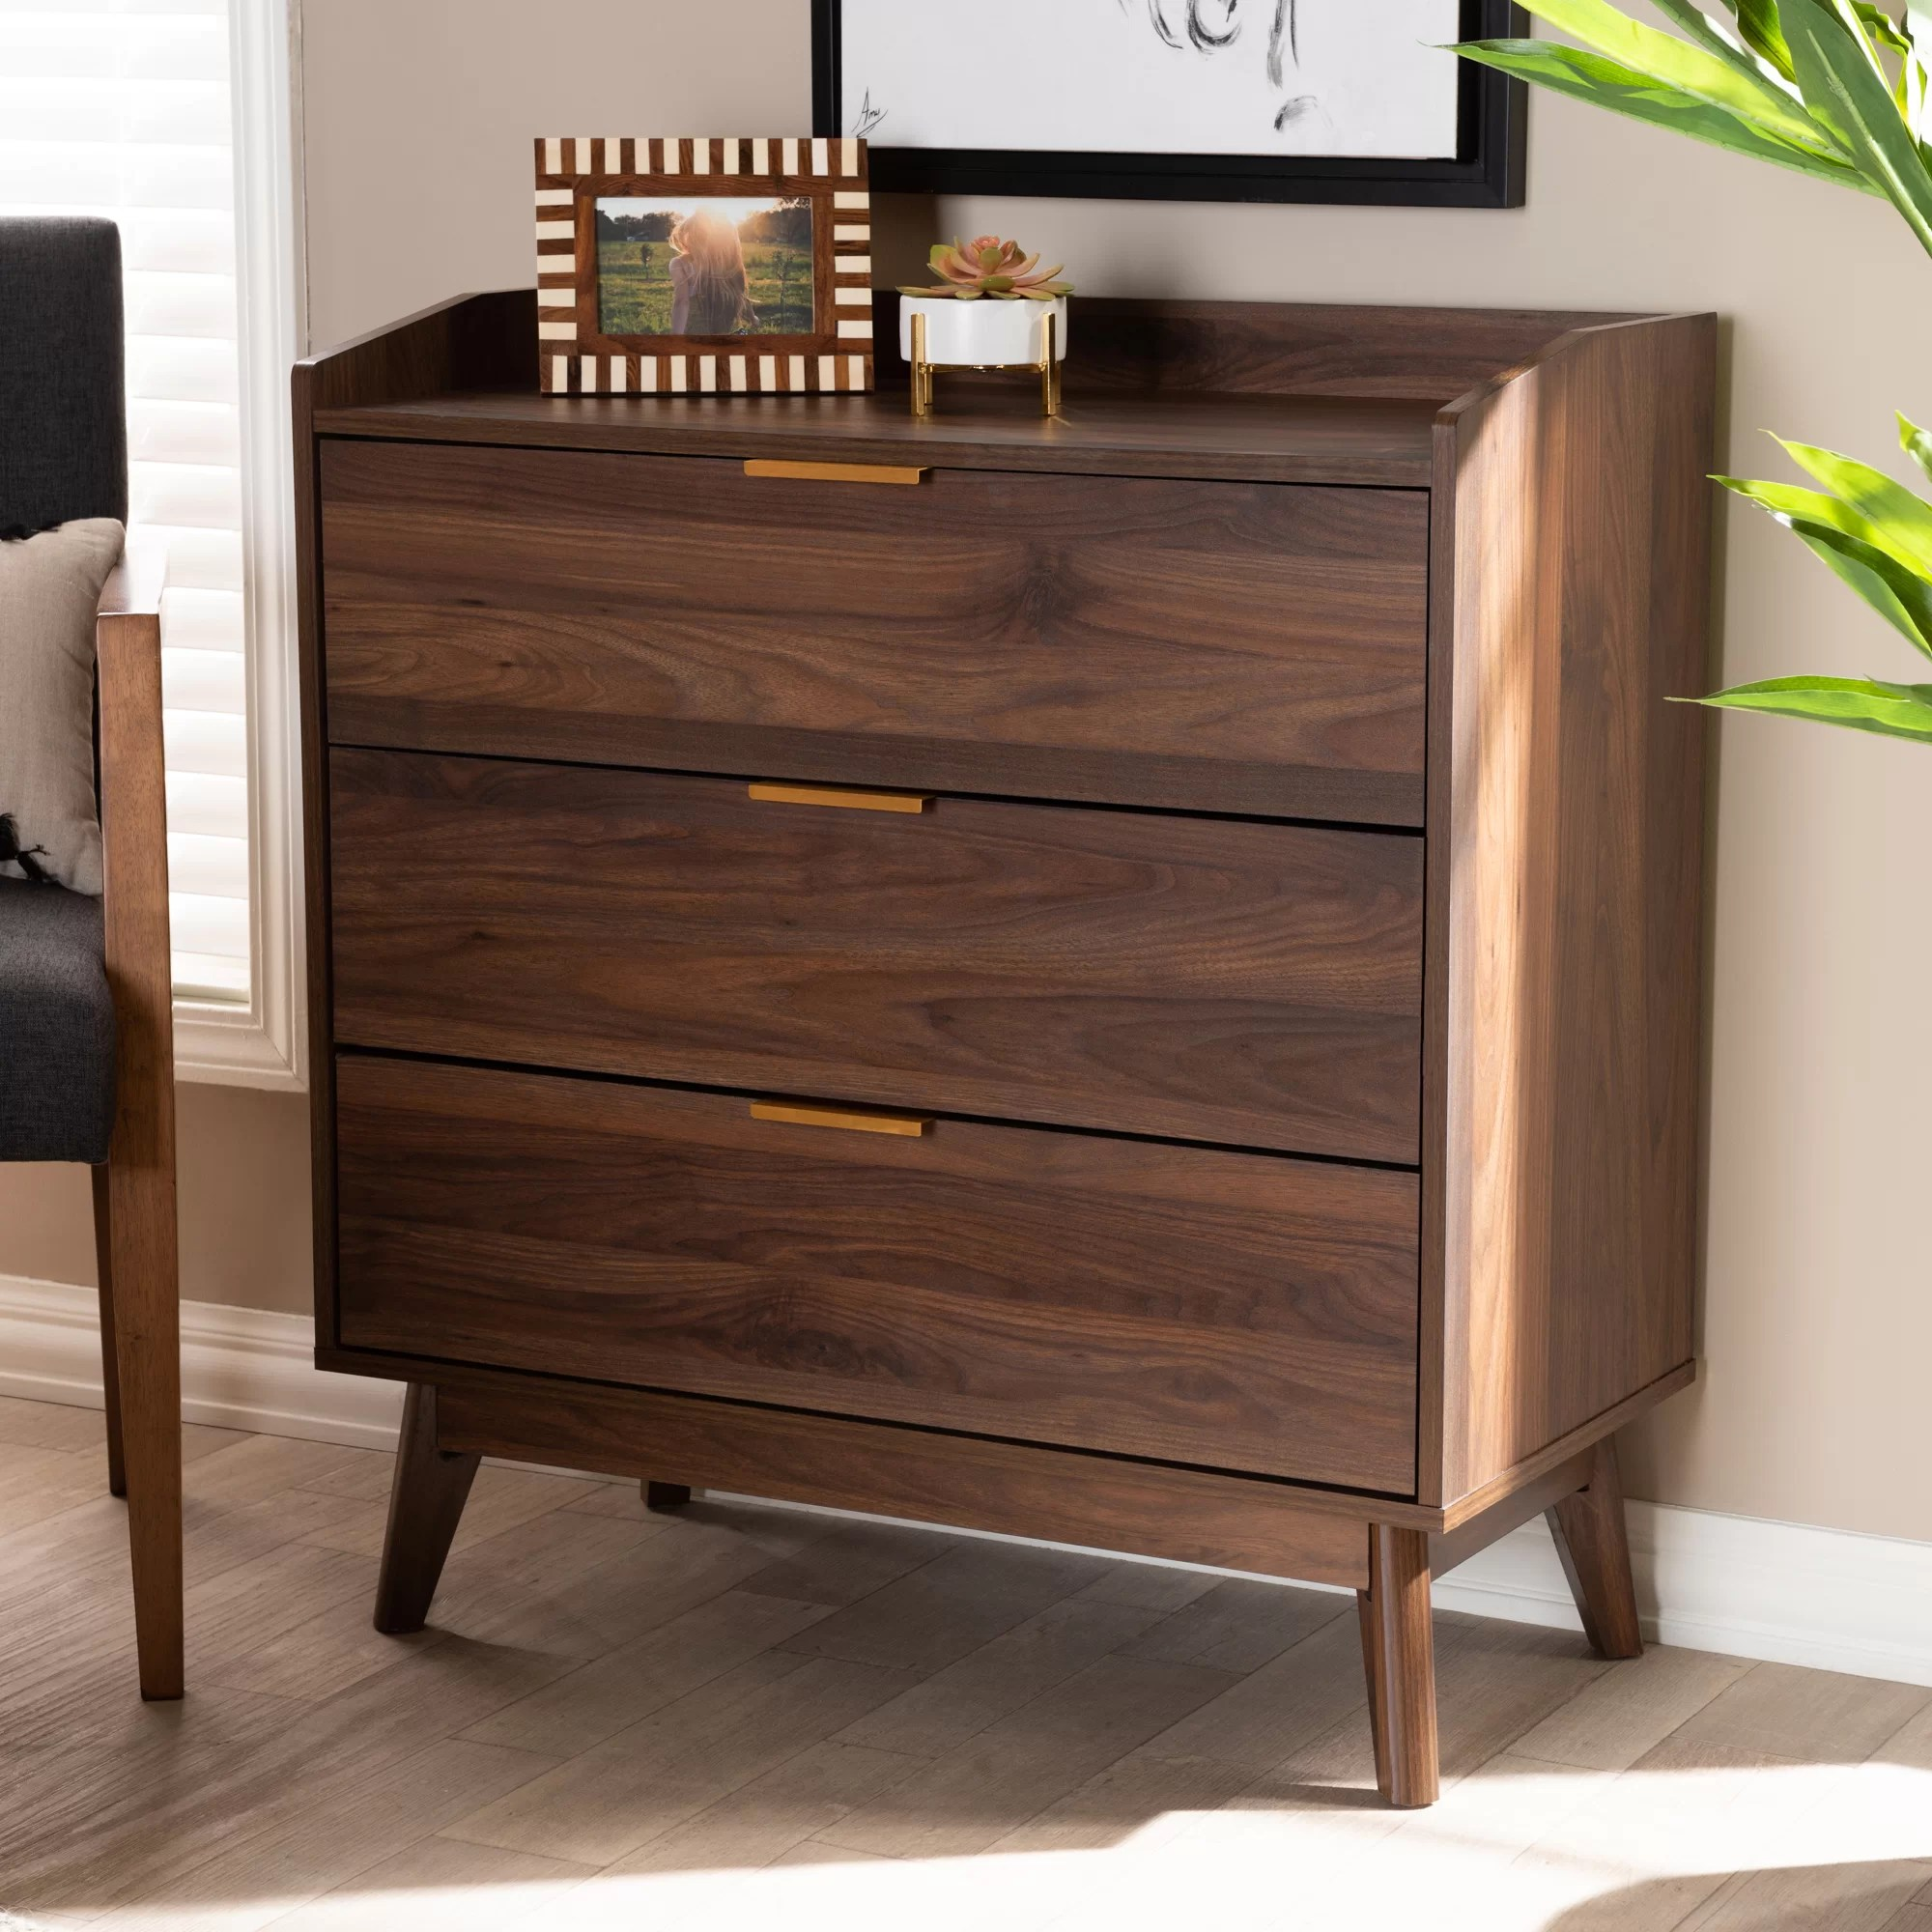 abe mid century modern 3 drawer bachelor s chest in brown